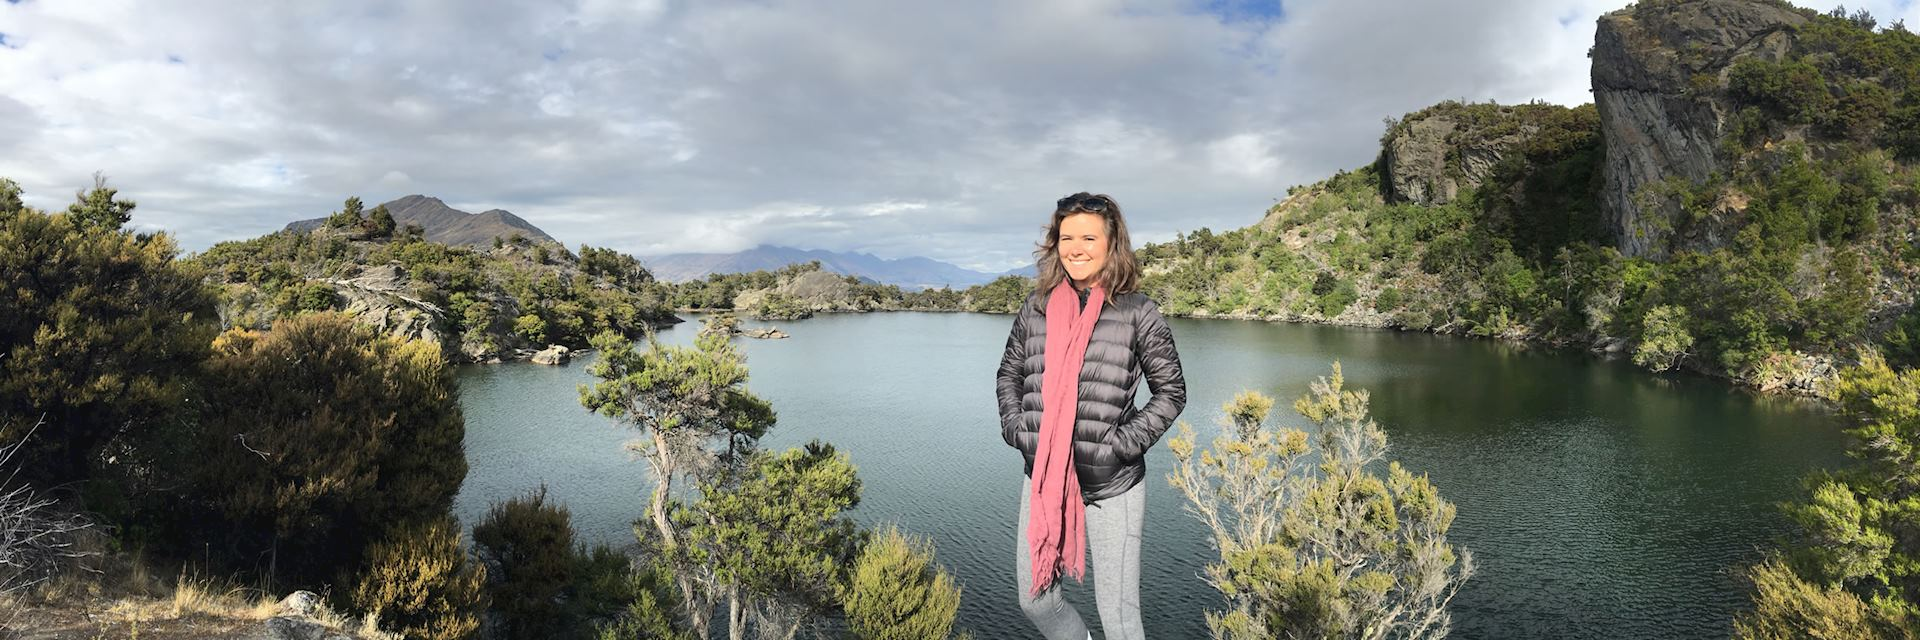 Jessie at Mou Wahu, Lake Wanaka, New Zealand